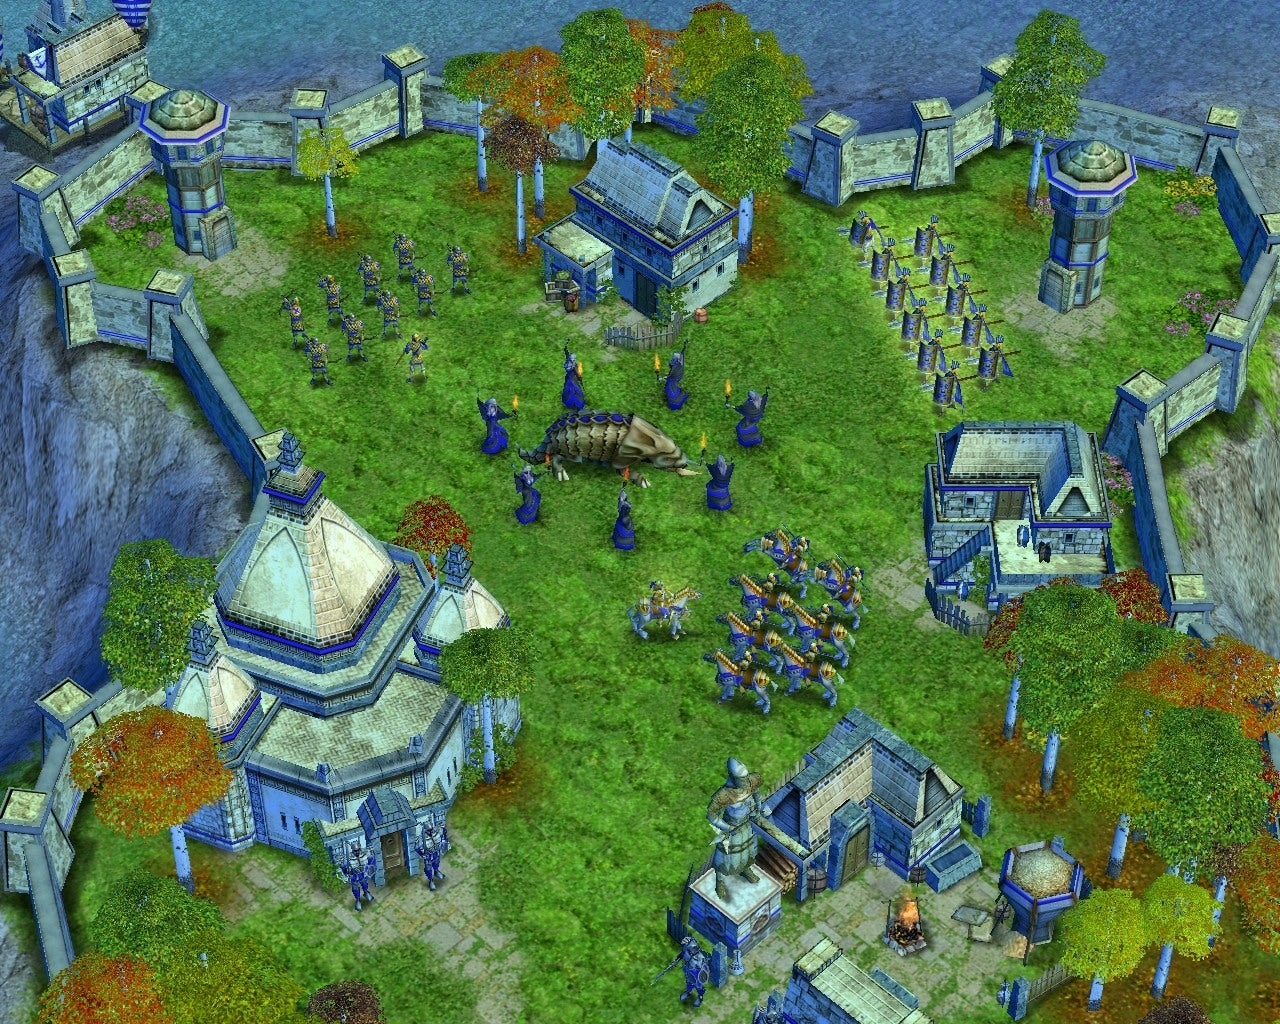 Hd Wallpaper Pack Free Download Rar Age Of Mythology Gold Edition Multipayer Full Download